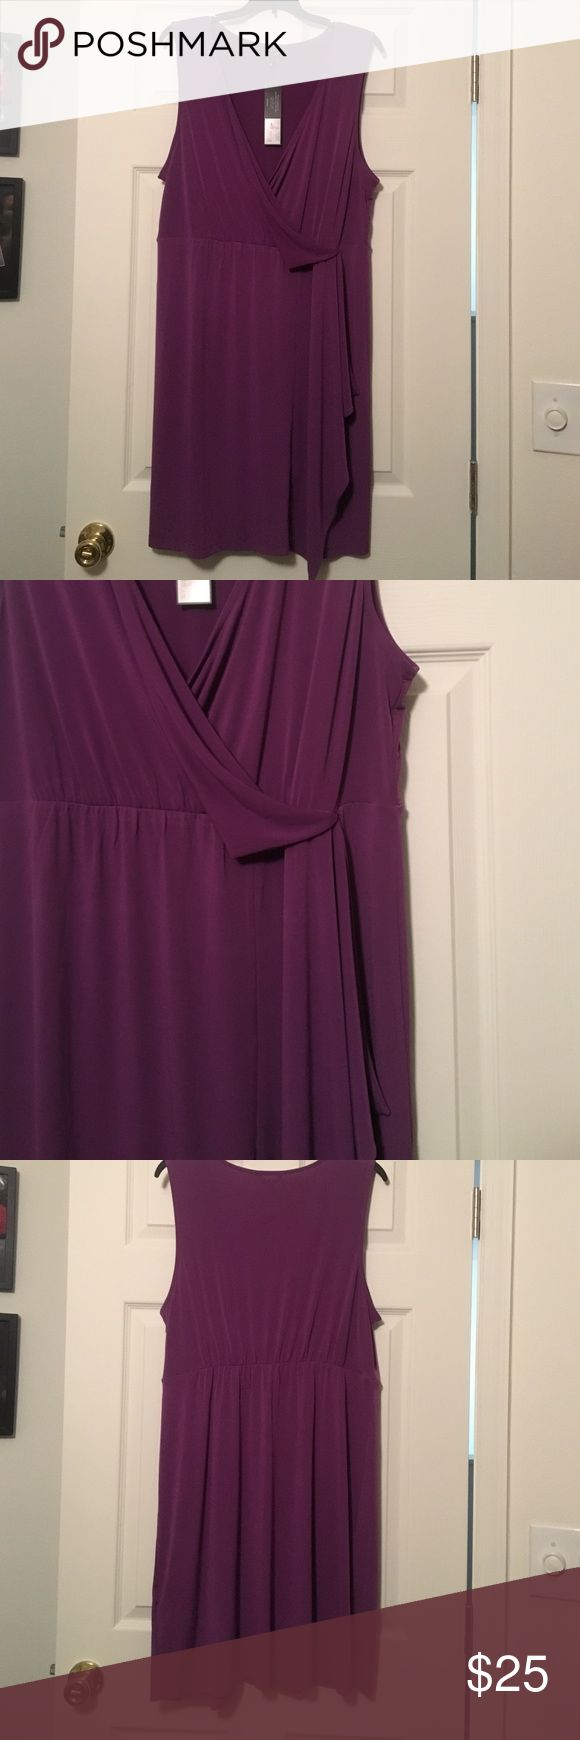 Daisy Fuentes Dress Plum colored Daisy Fuentes dress. Soft flowy fabric. New with tags from a non smoking home. Size: XL Daisy Fuentes Dresses Midi